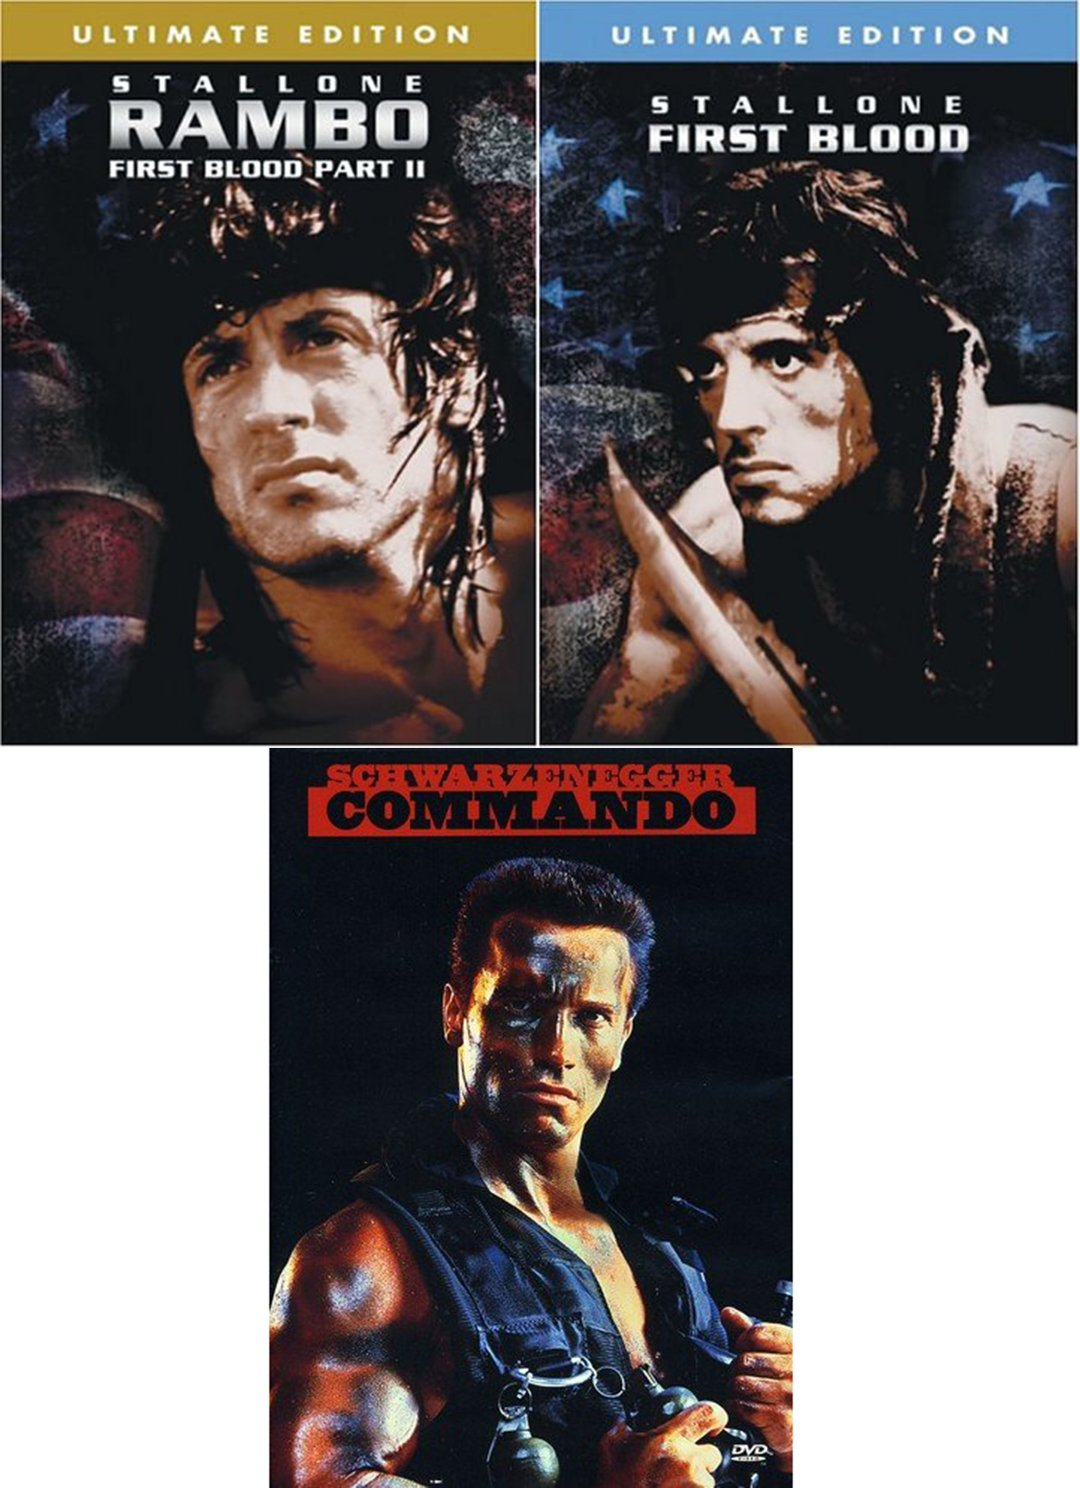 Sly & Arnold First Blood & Rambo Sylvester Stallone + Commando DVD 3 Pack Military Movie Action Set: Amazon.es: Cine y Series TV